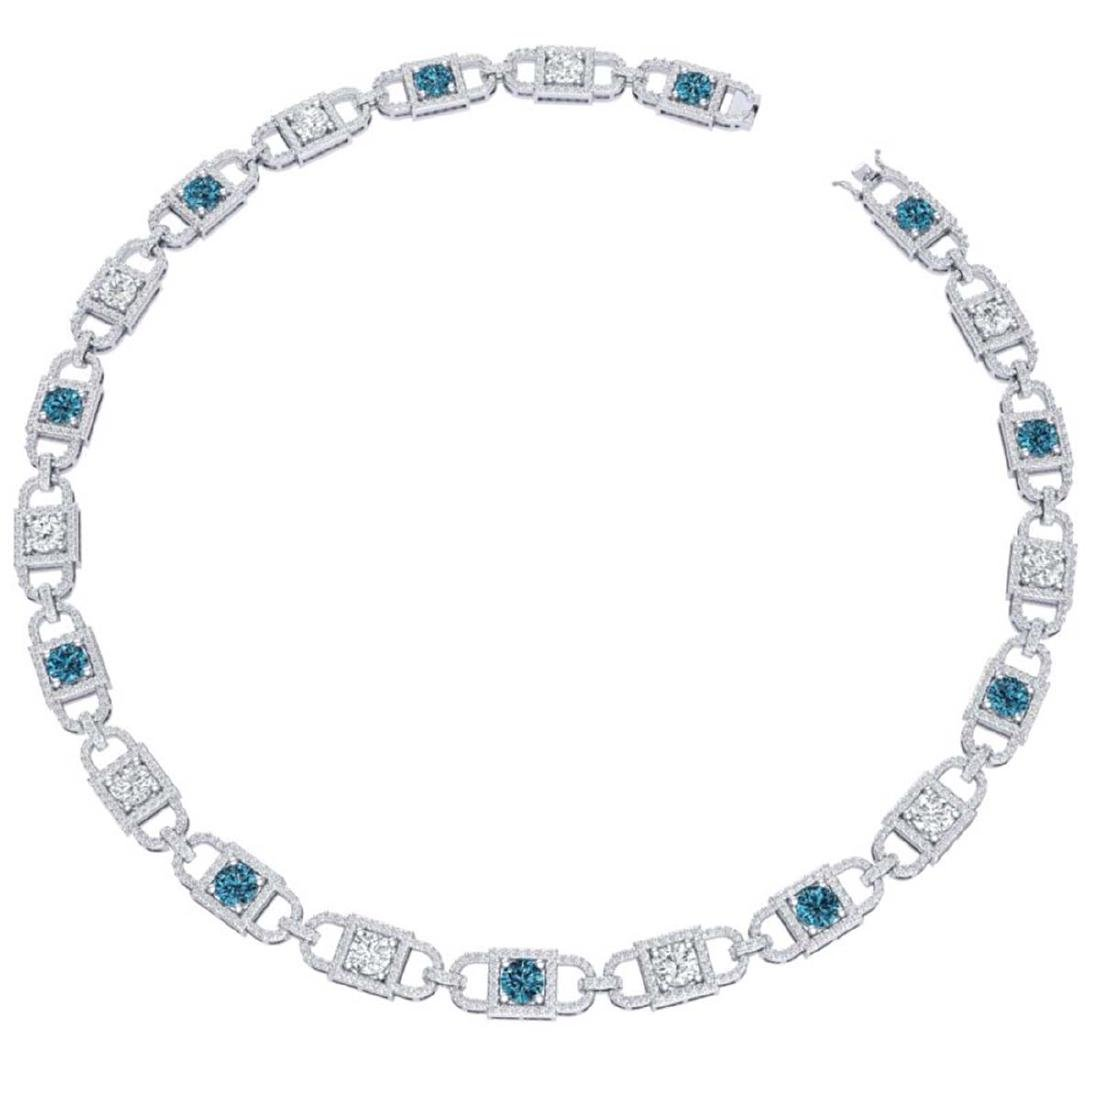 20 CTW SI/I Intense Blue And White Diamond Necklace 18K - 3